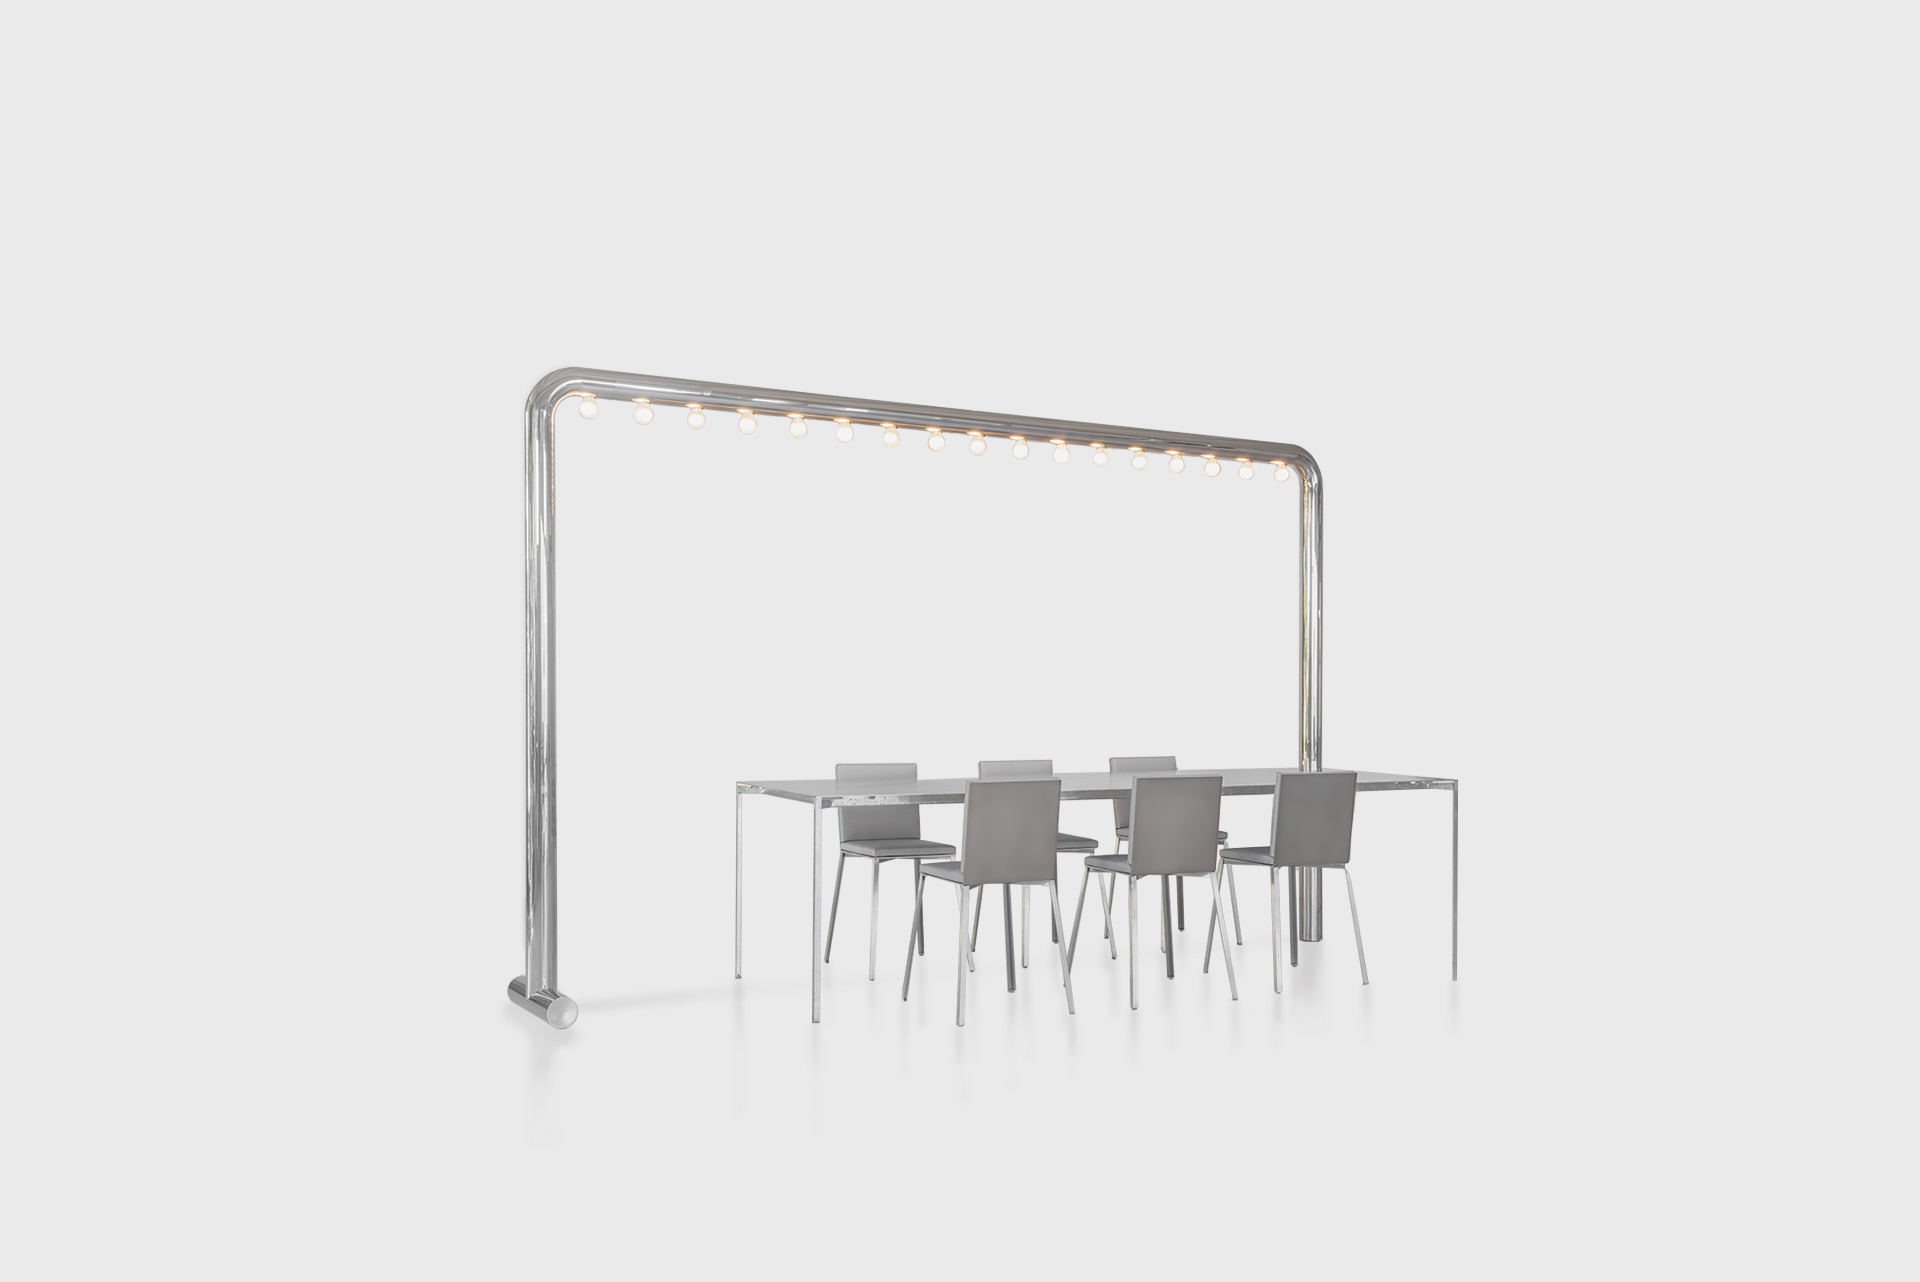 """Dining table From the series """"Beasts"""" Produced in exclusive for SIDE GALLERY Manufactured by ERTL und ZULL Berlin, 2021 Galvanized steel, high polished steel"""